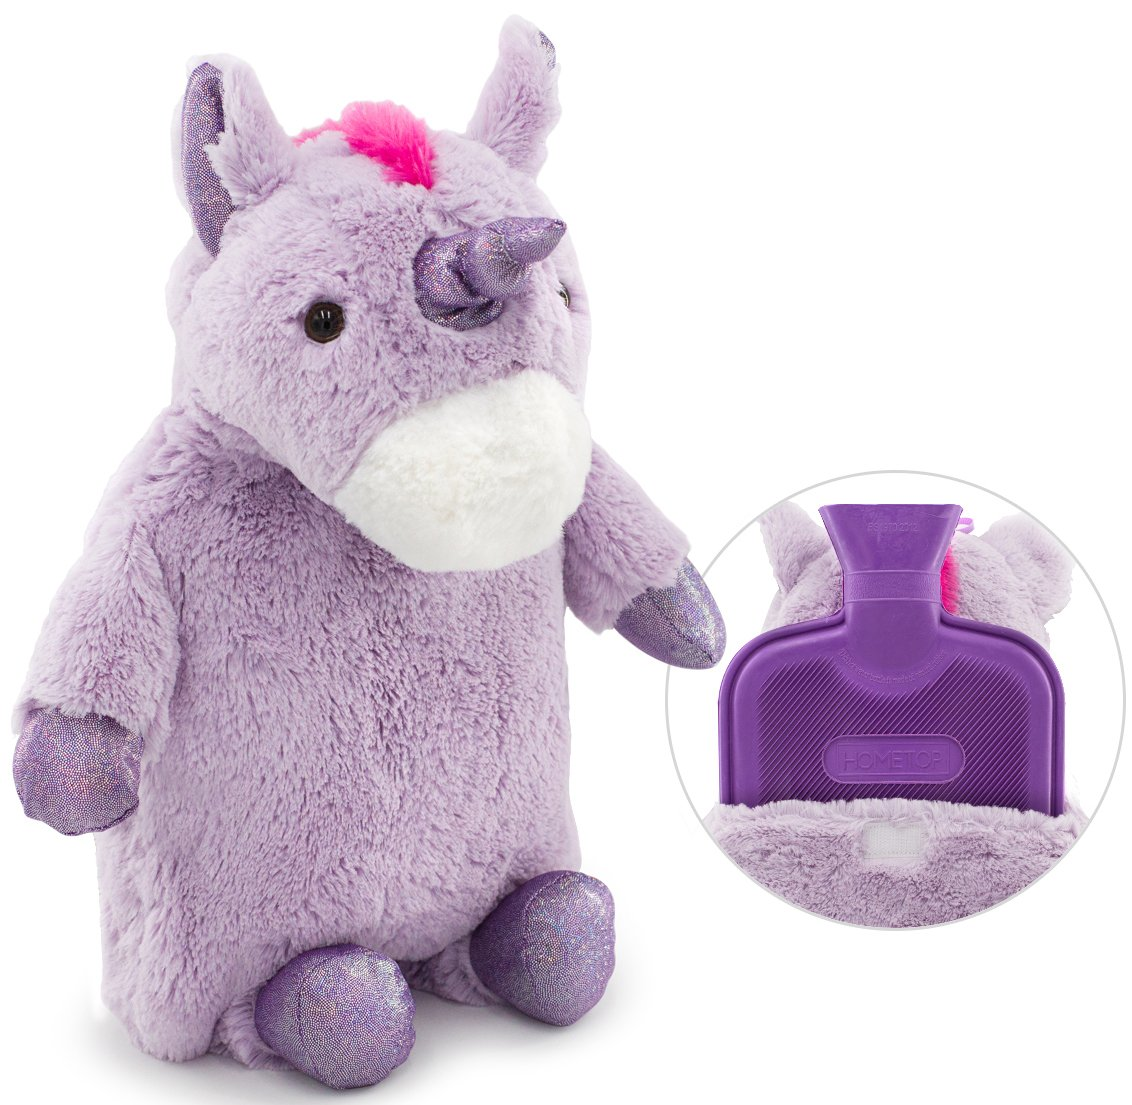 HomeTop Premium Classic Rubber Hot Water Bottle with Cute Unicorn Cover (2L, Purple) by HomeTop